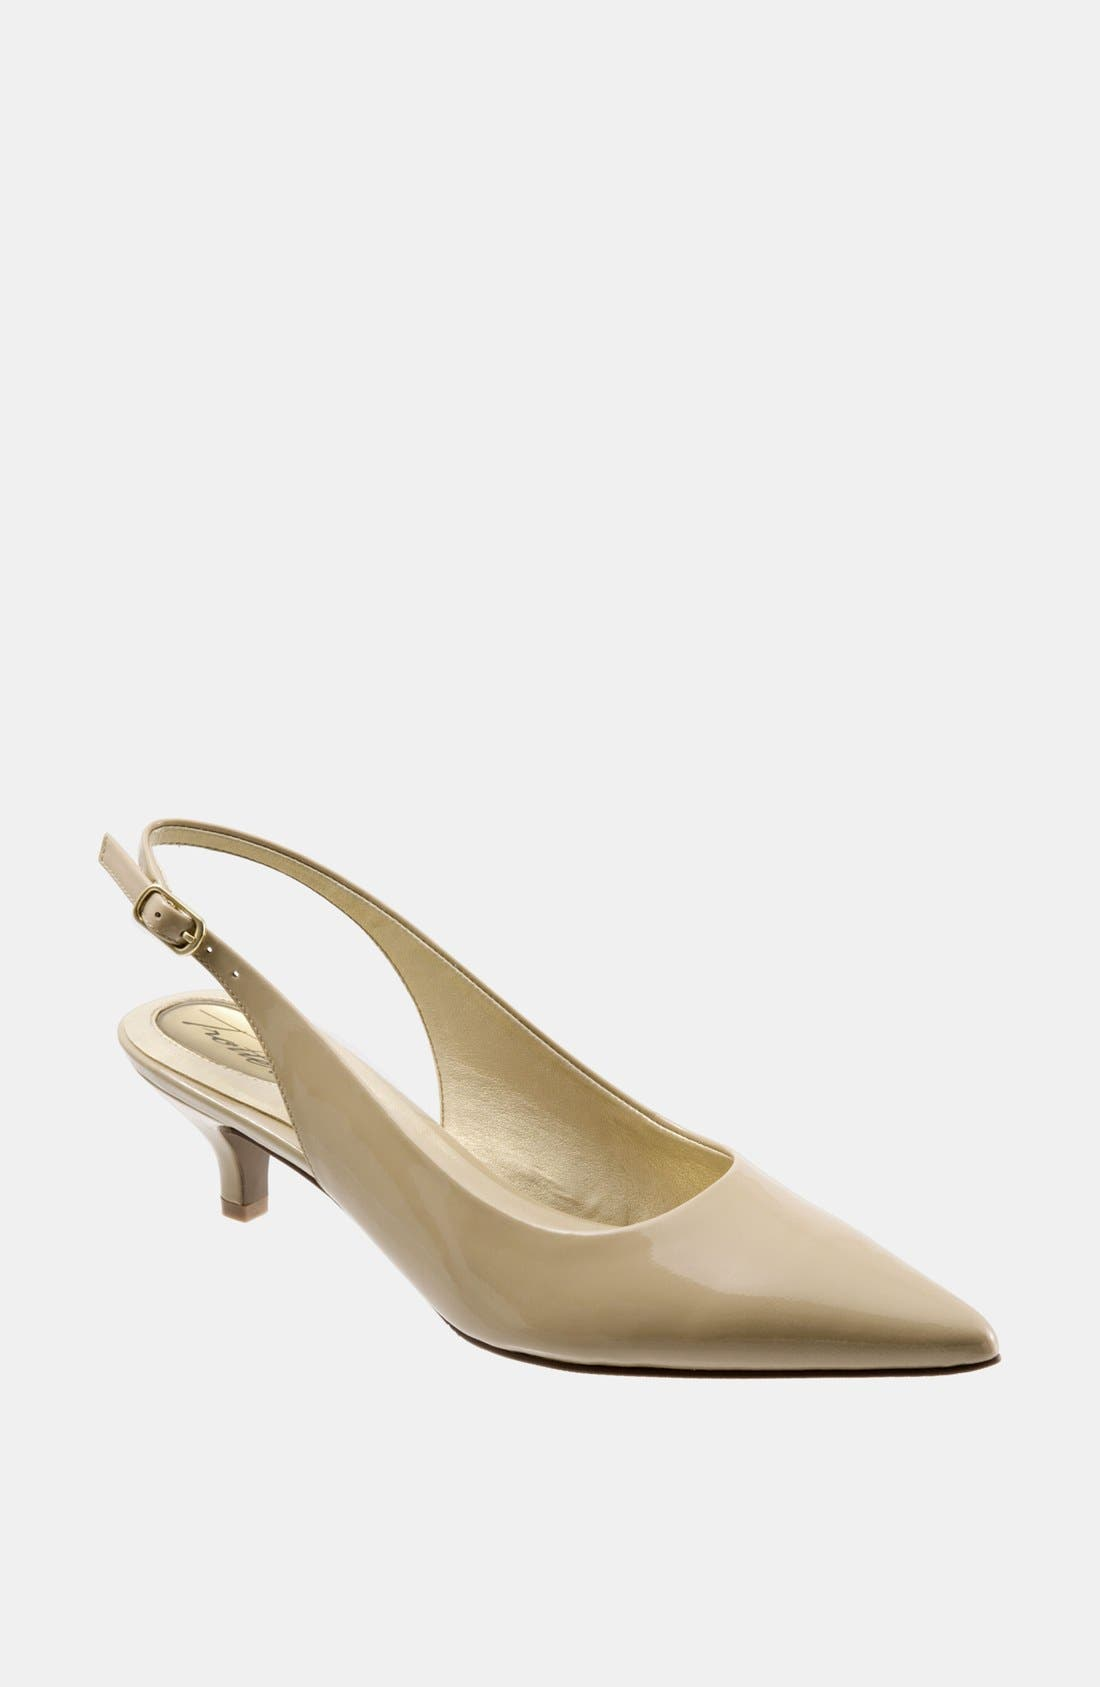 TROTTERS 'Prima' Pump, Main, color, NUDE PATENT